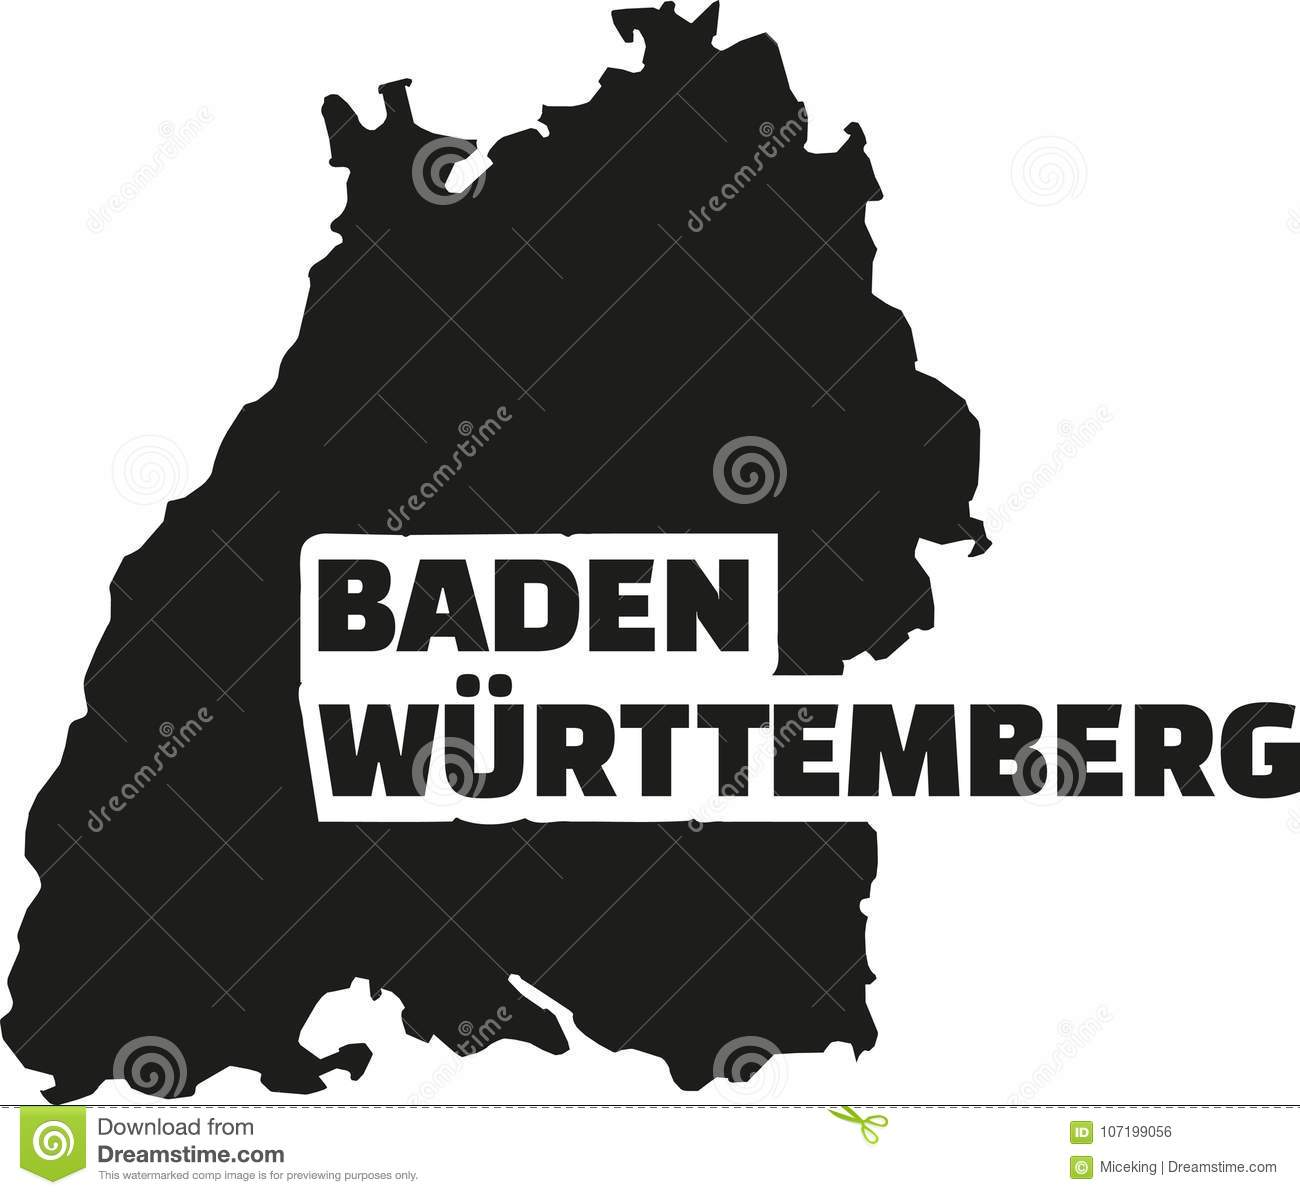 Map Of Germany Karlsruhe Baden.Baden Wurttemberg Map With Title Stock Vector Illustration Of